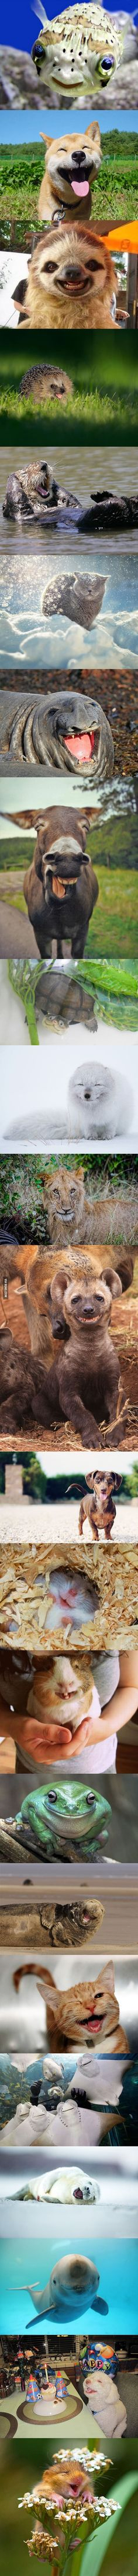 The happiest animals in the world.